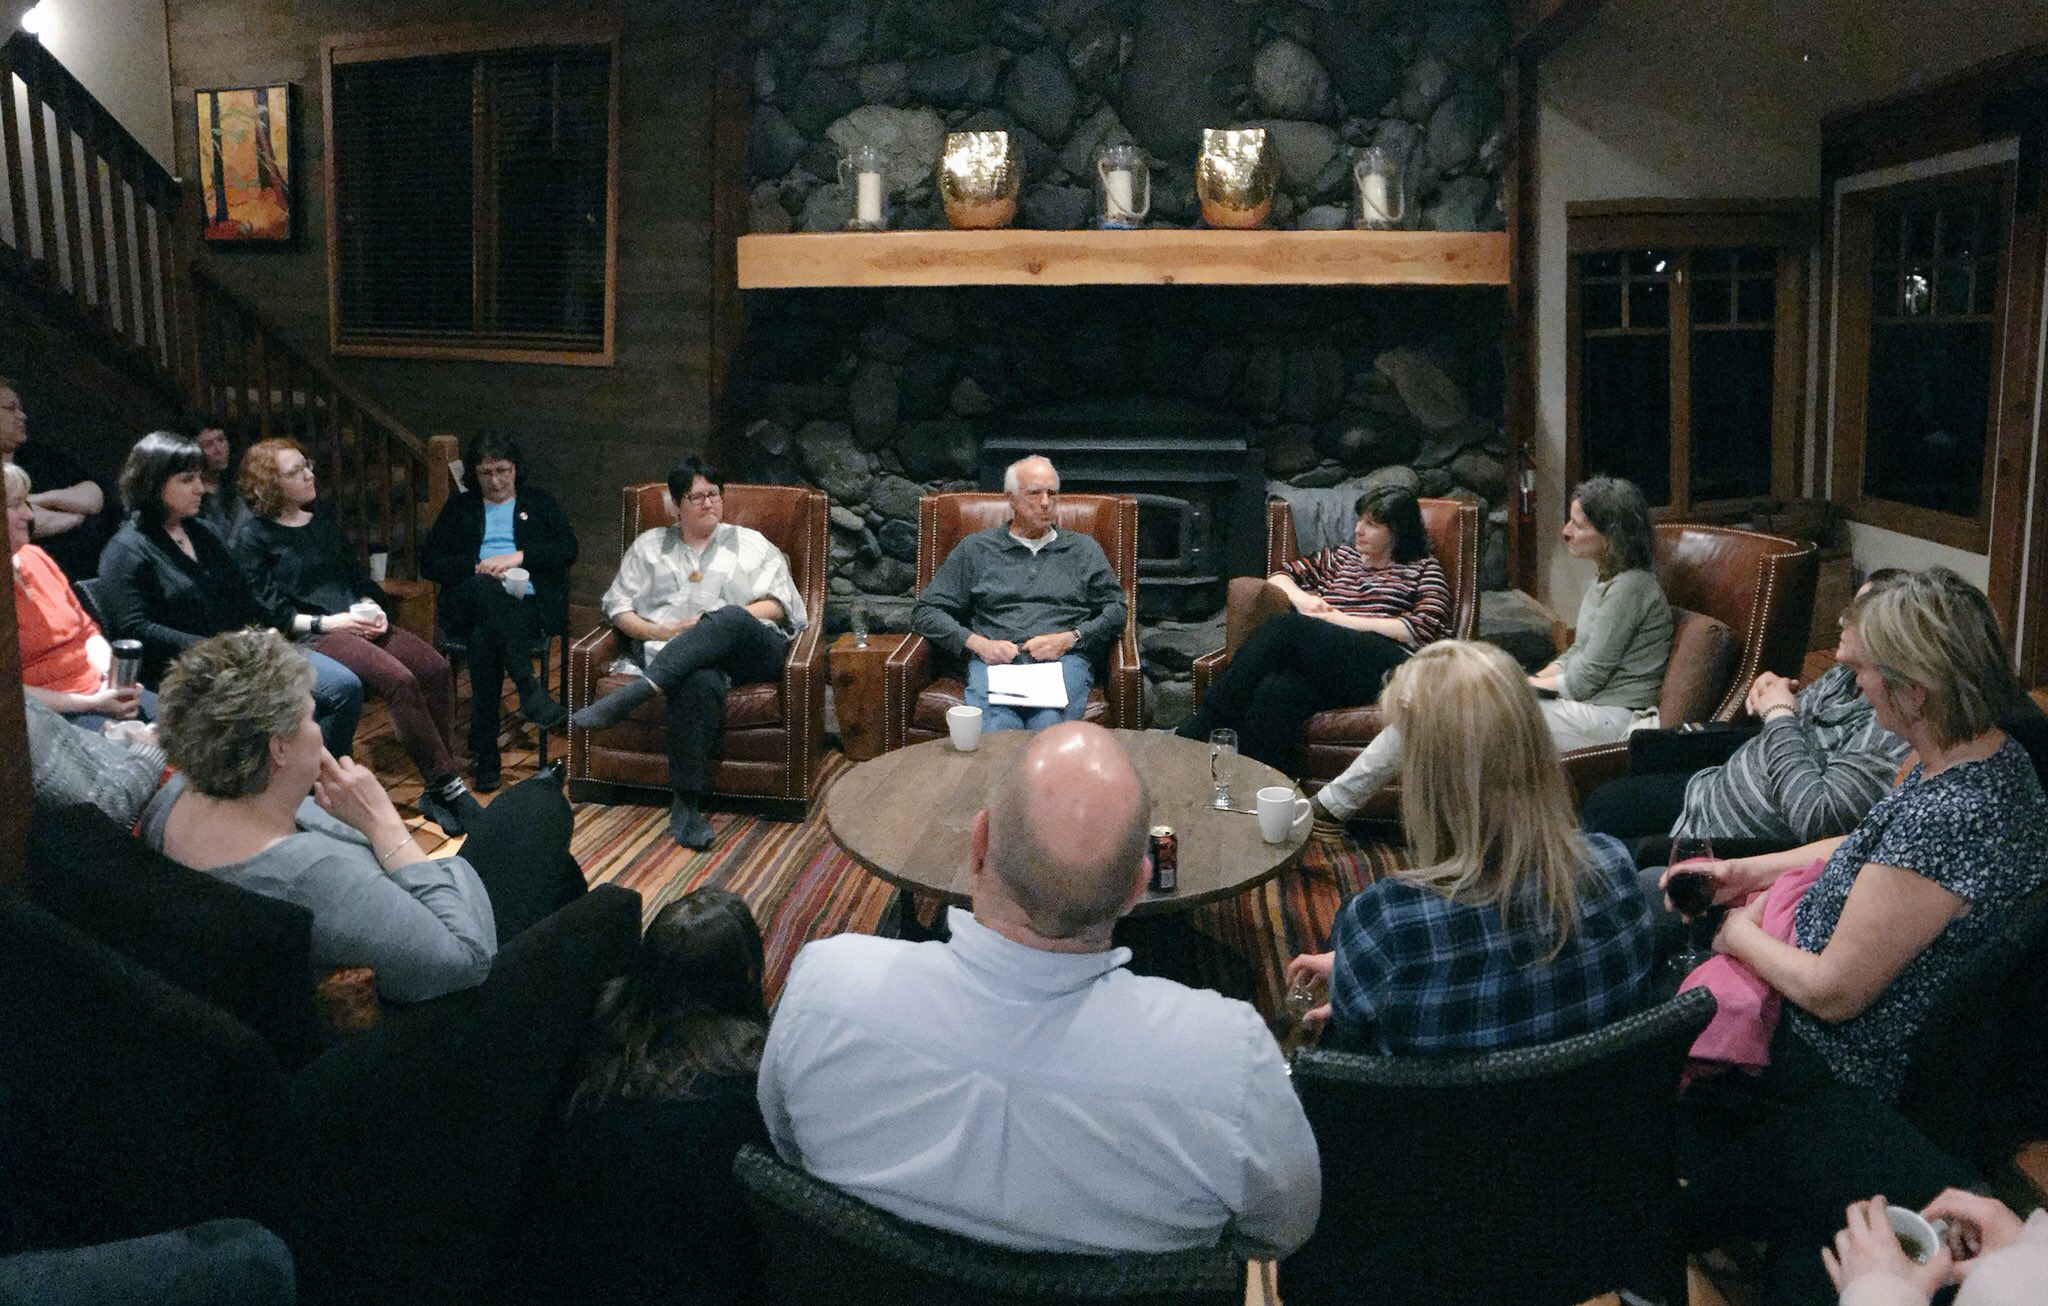 An evening 'fireside chat' was held to hear from Nourish Advisors: Melanie Goodchild, Hal Hamilton and Wendy Smith